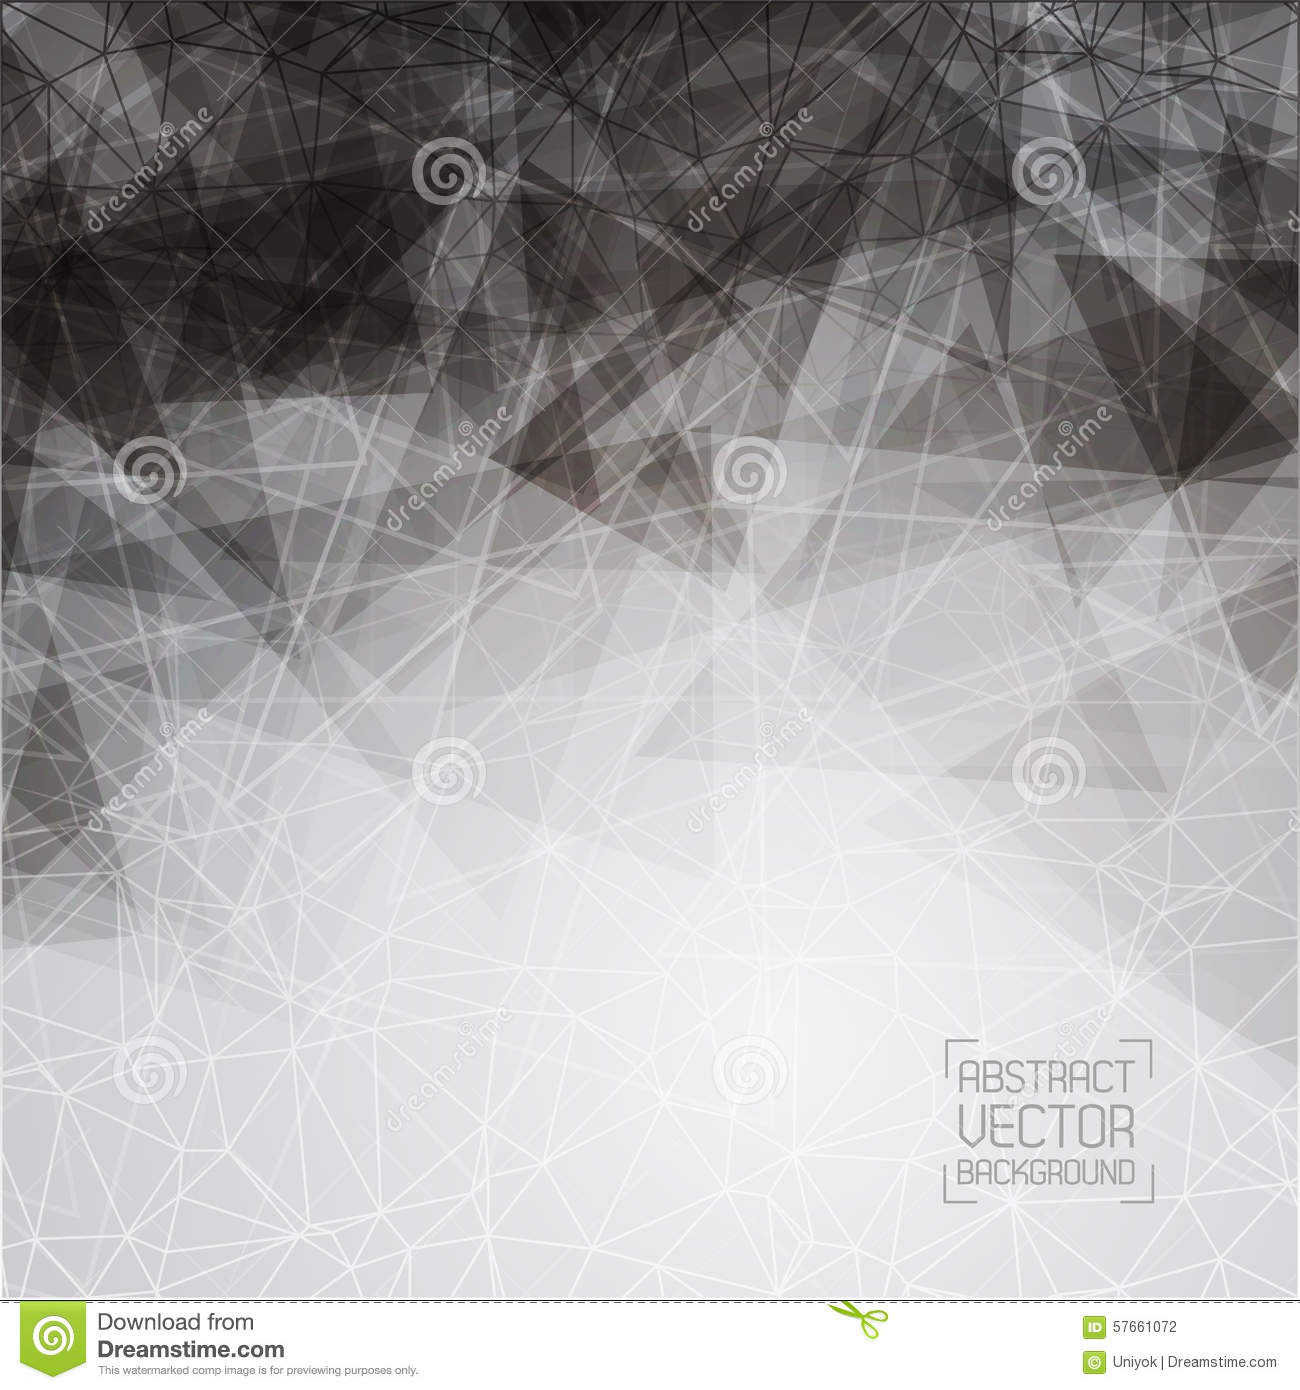 Technological monochrome background with a pattern